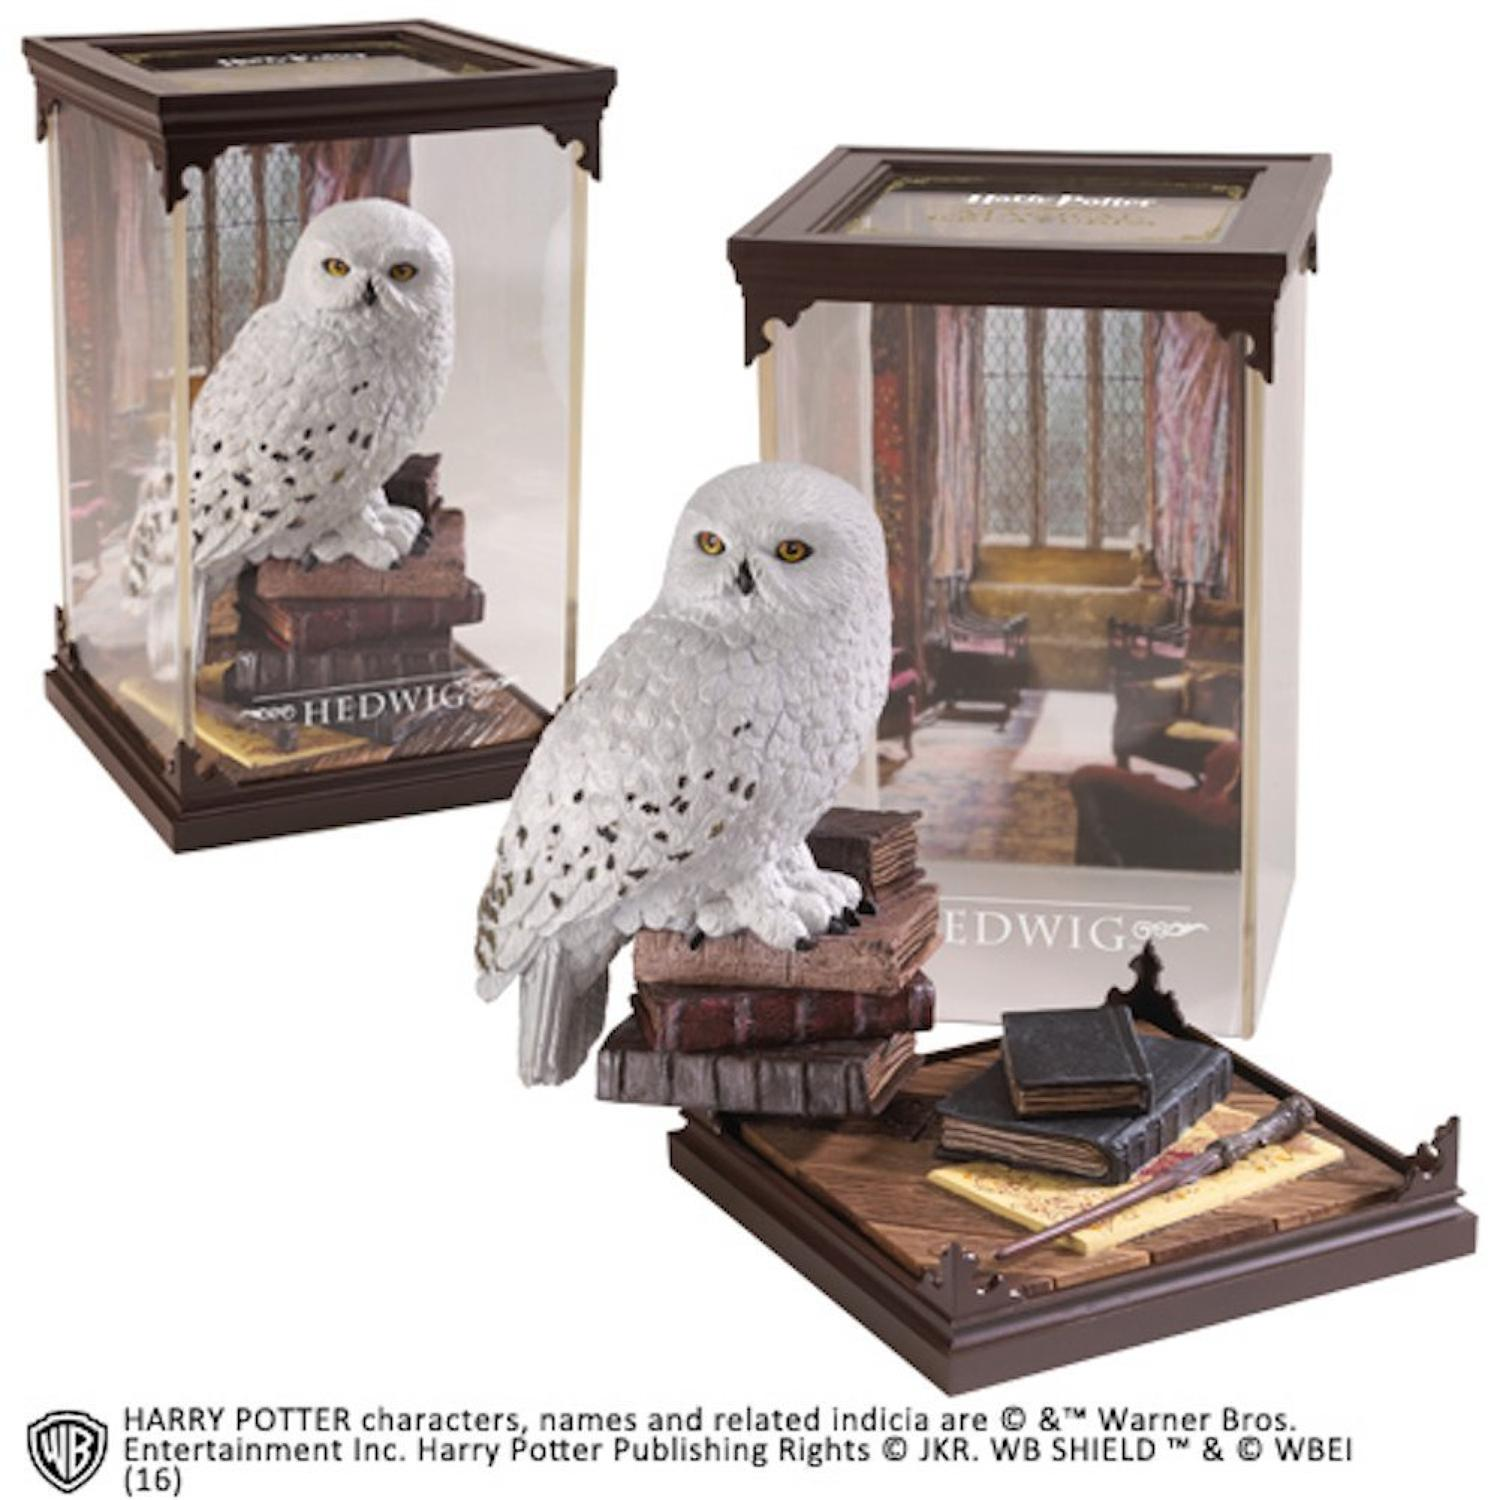 Harry Potter - Hedwig the Owl Magical Creature